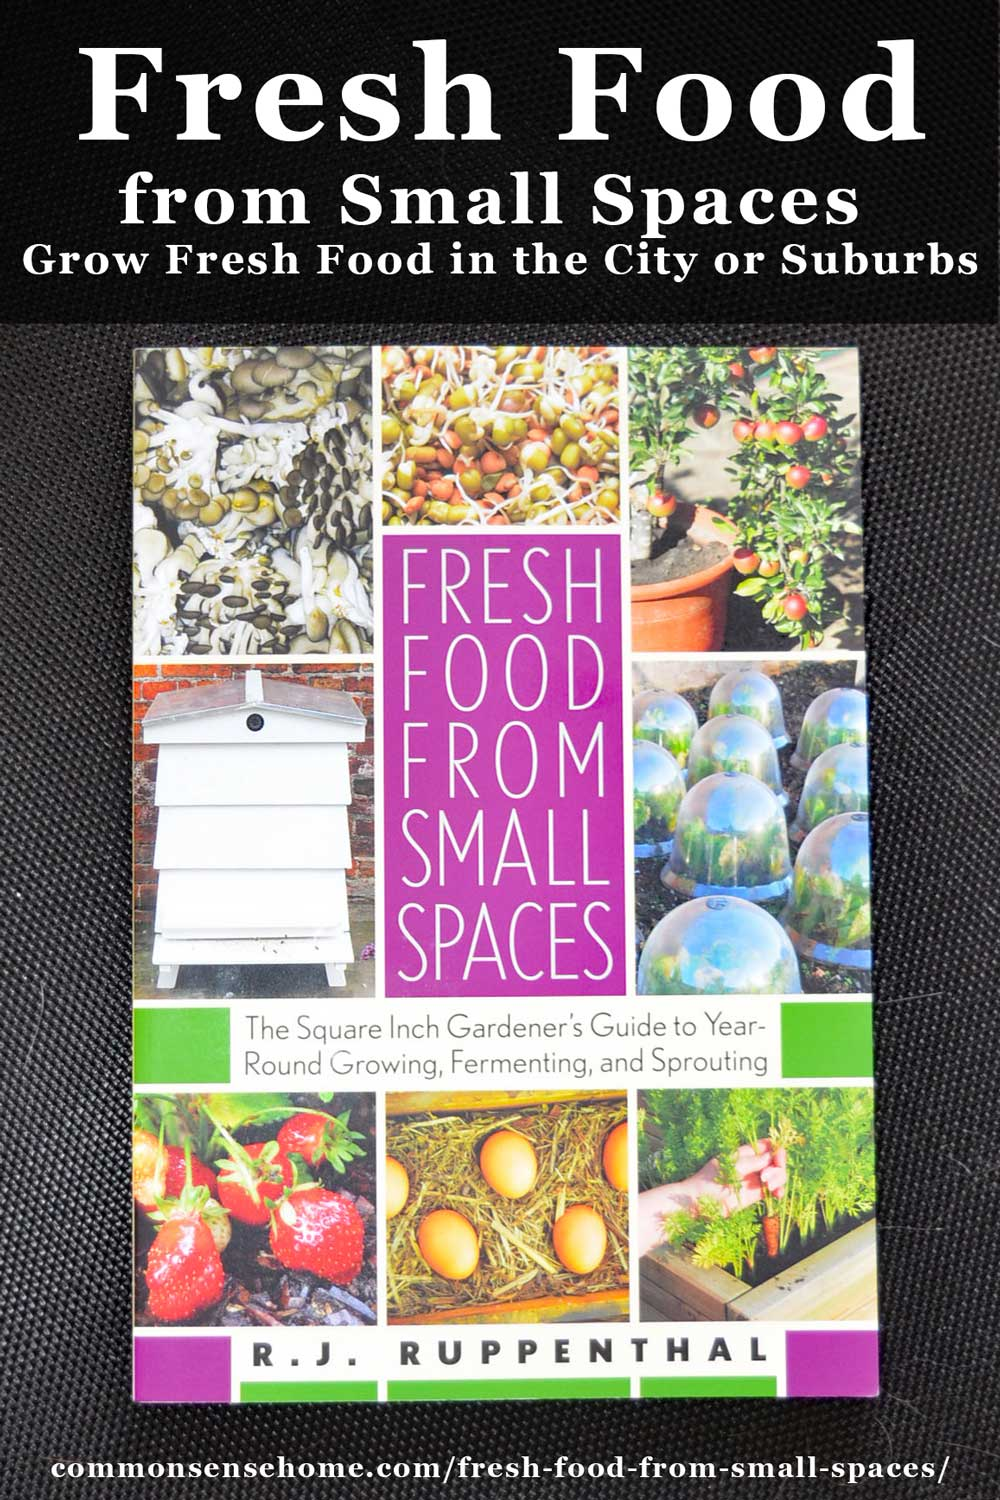 Fresh Food from Small Spaces - Grow Fresh Food in the City or Suburbs